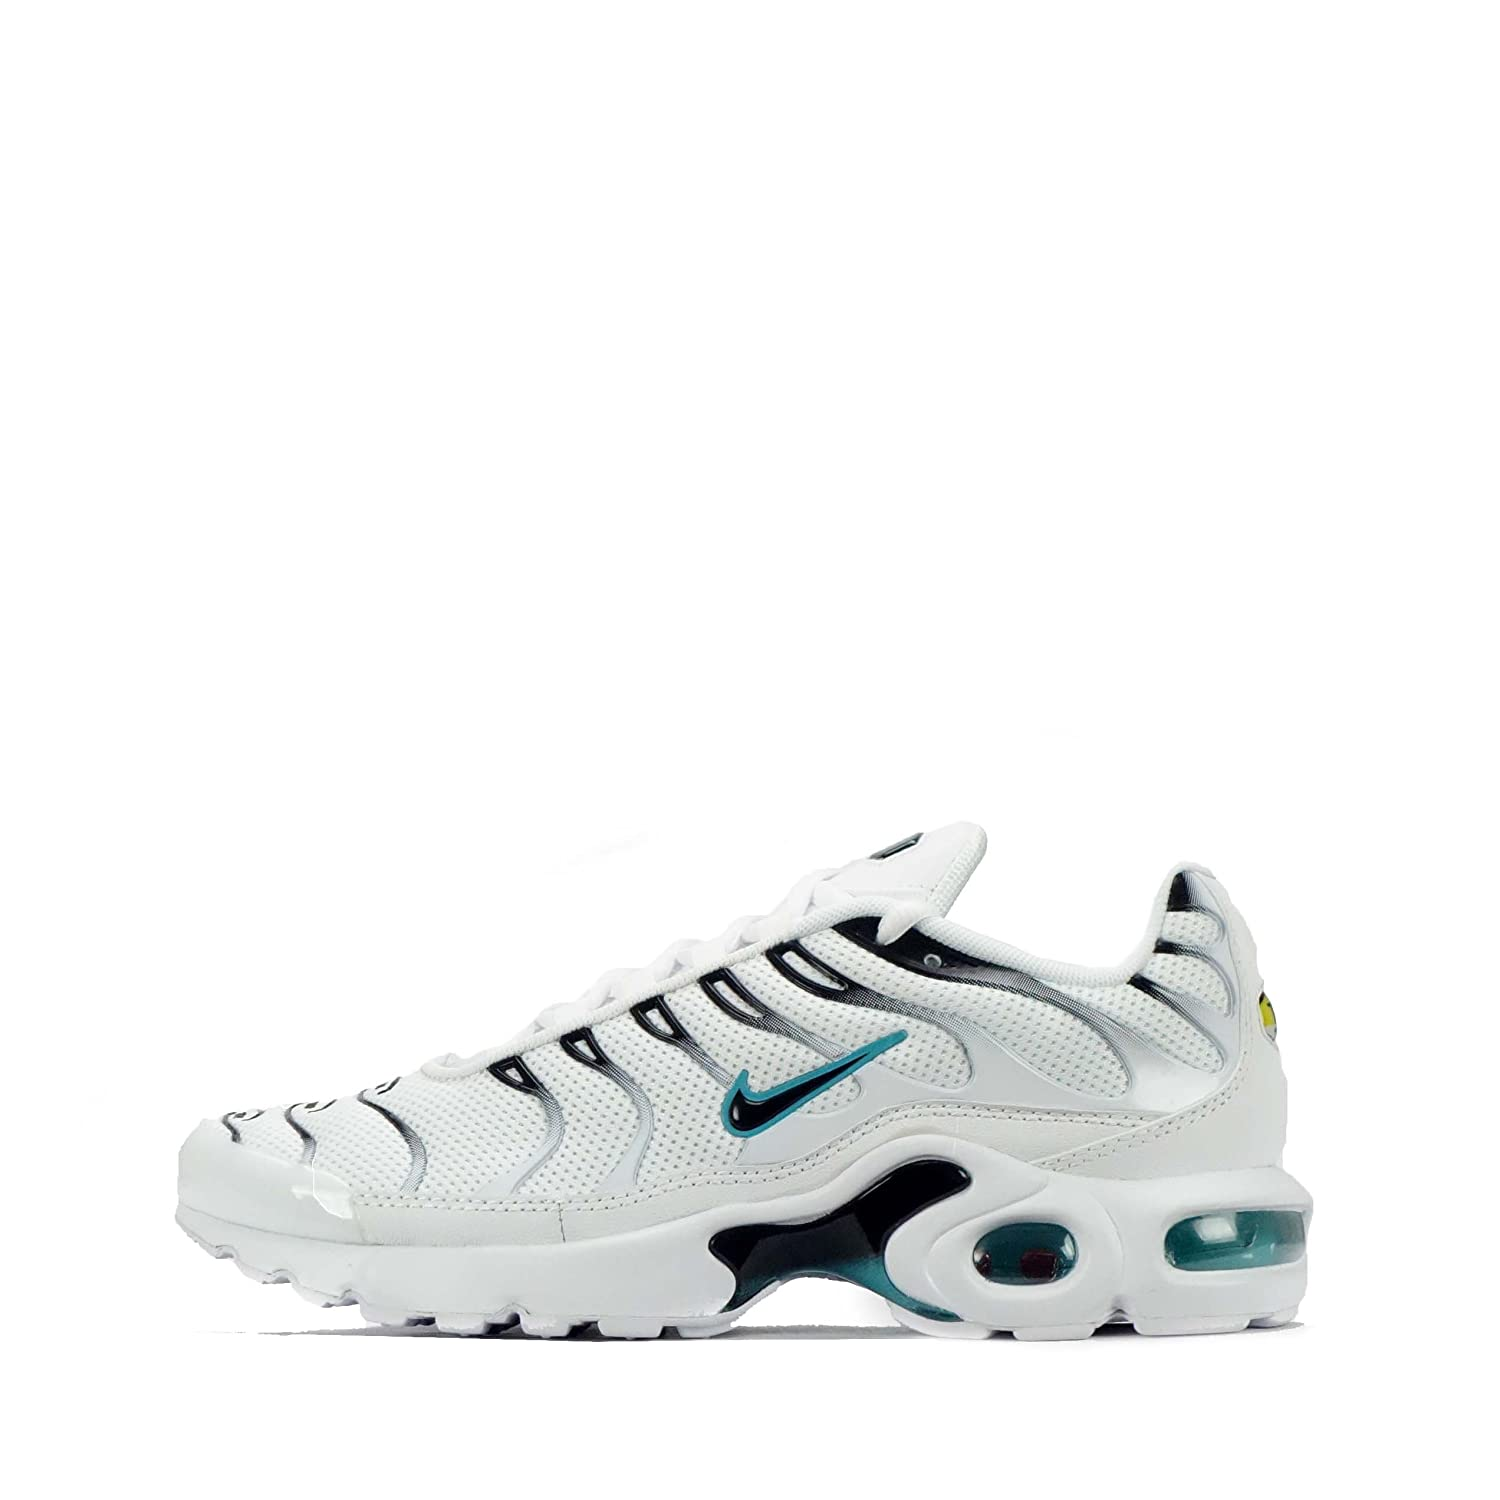 new product 43c22 5e817 Nike Air Max Plus TN1 Tuned BG Junior Youth Trainers (UK 5 ...